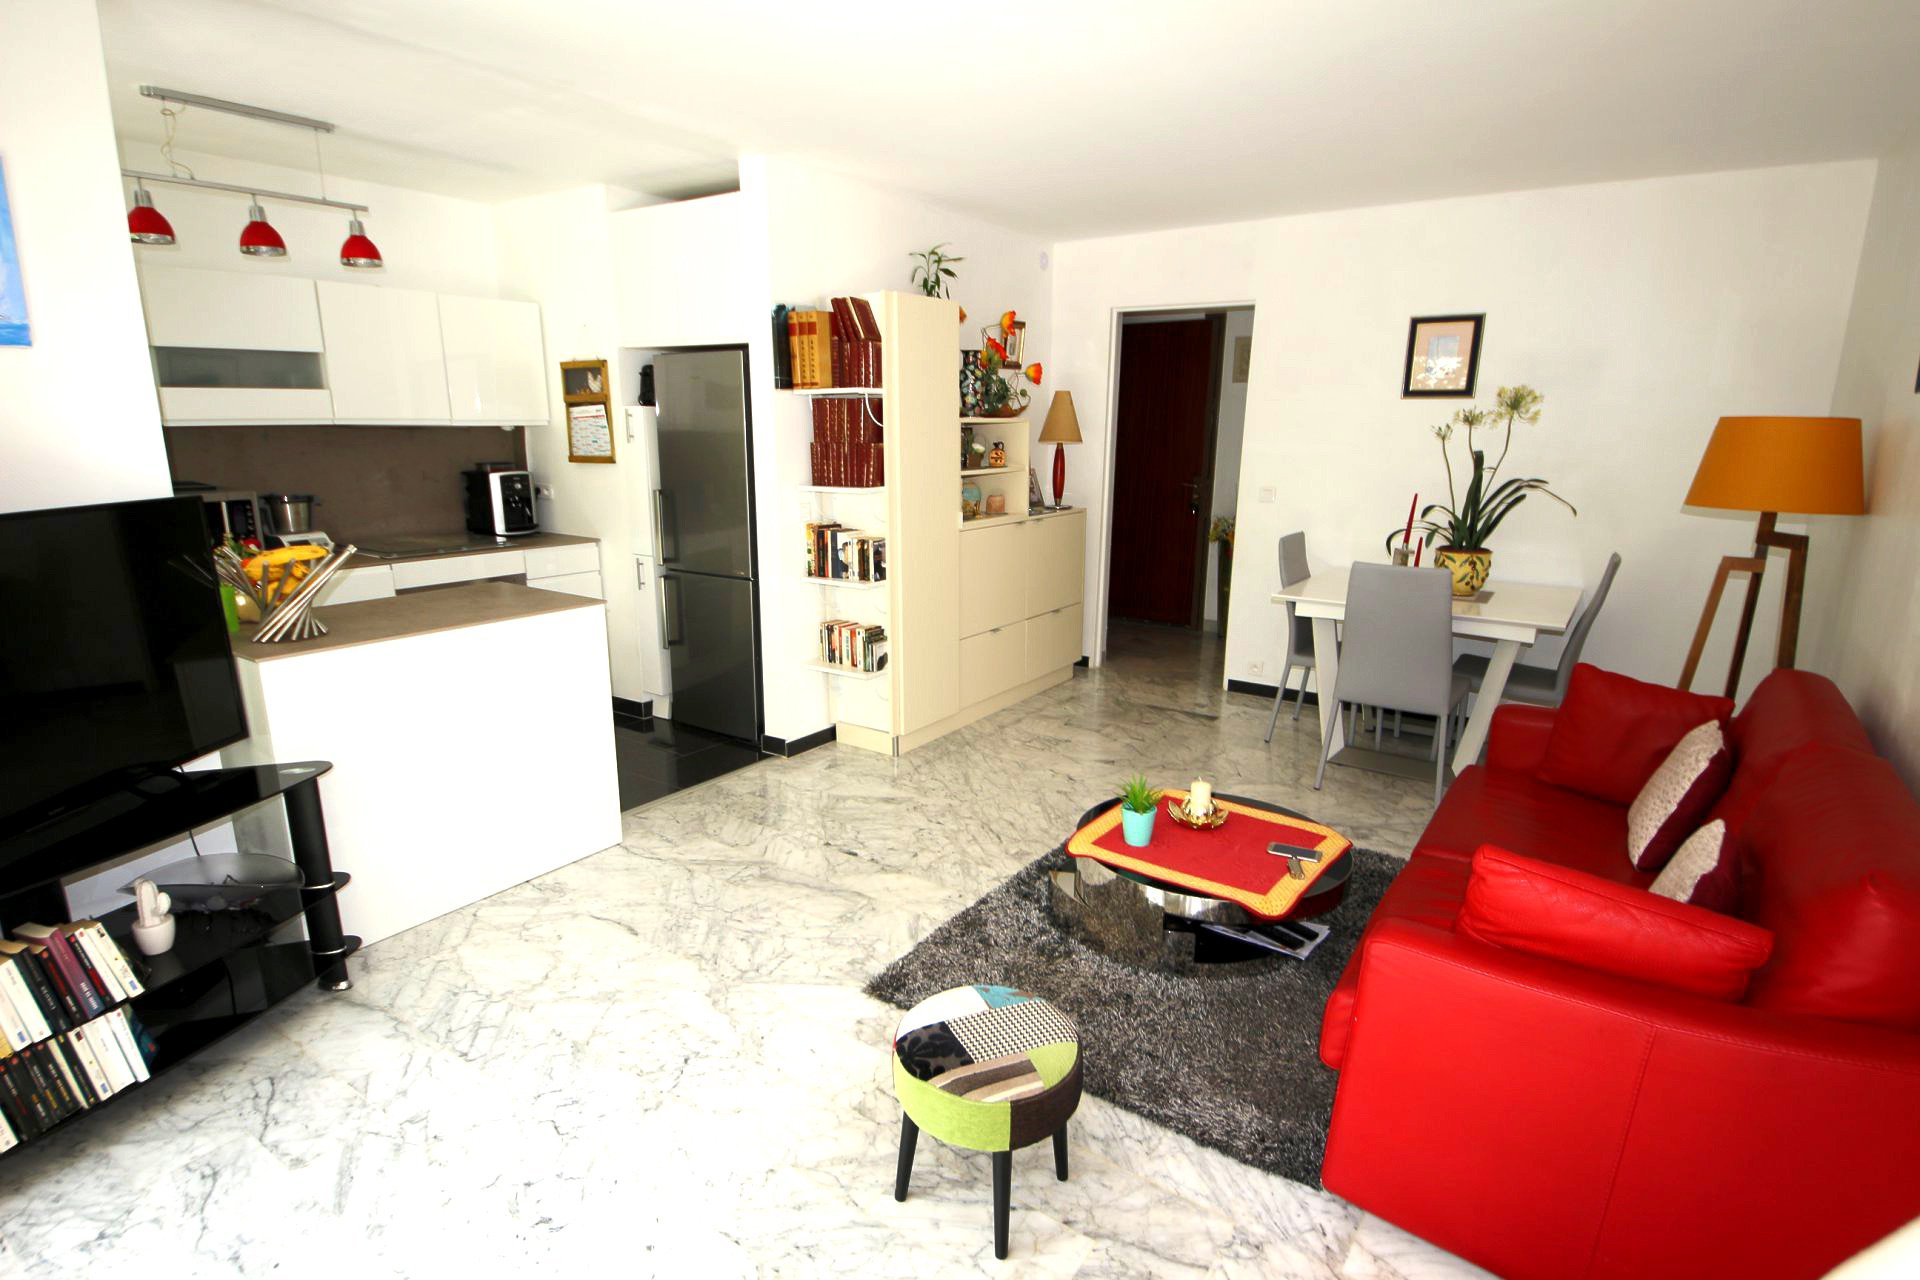 Montfleury 1/2 bedroom apartment 58sqm with garden 80sqm